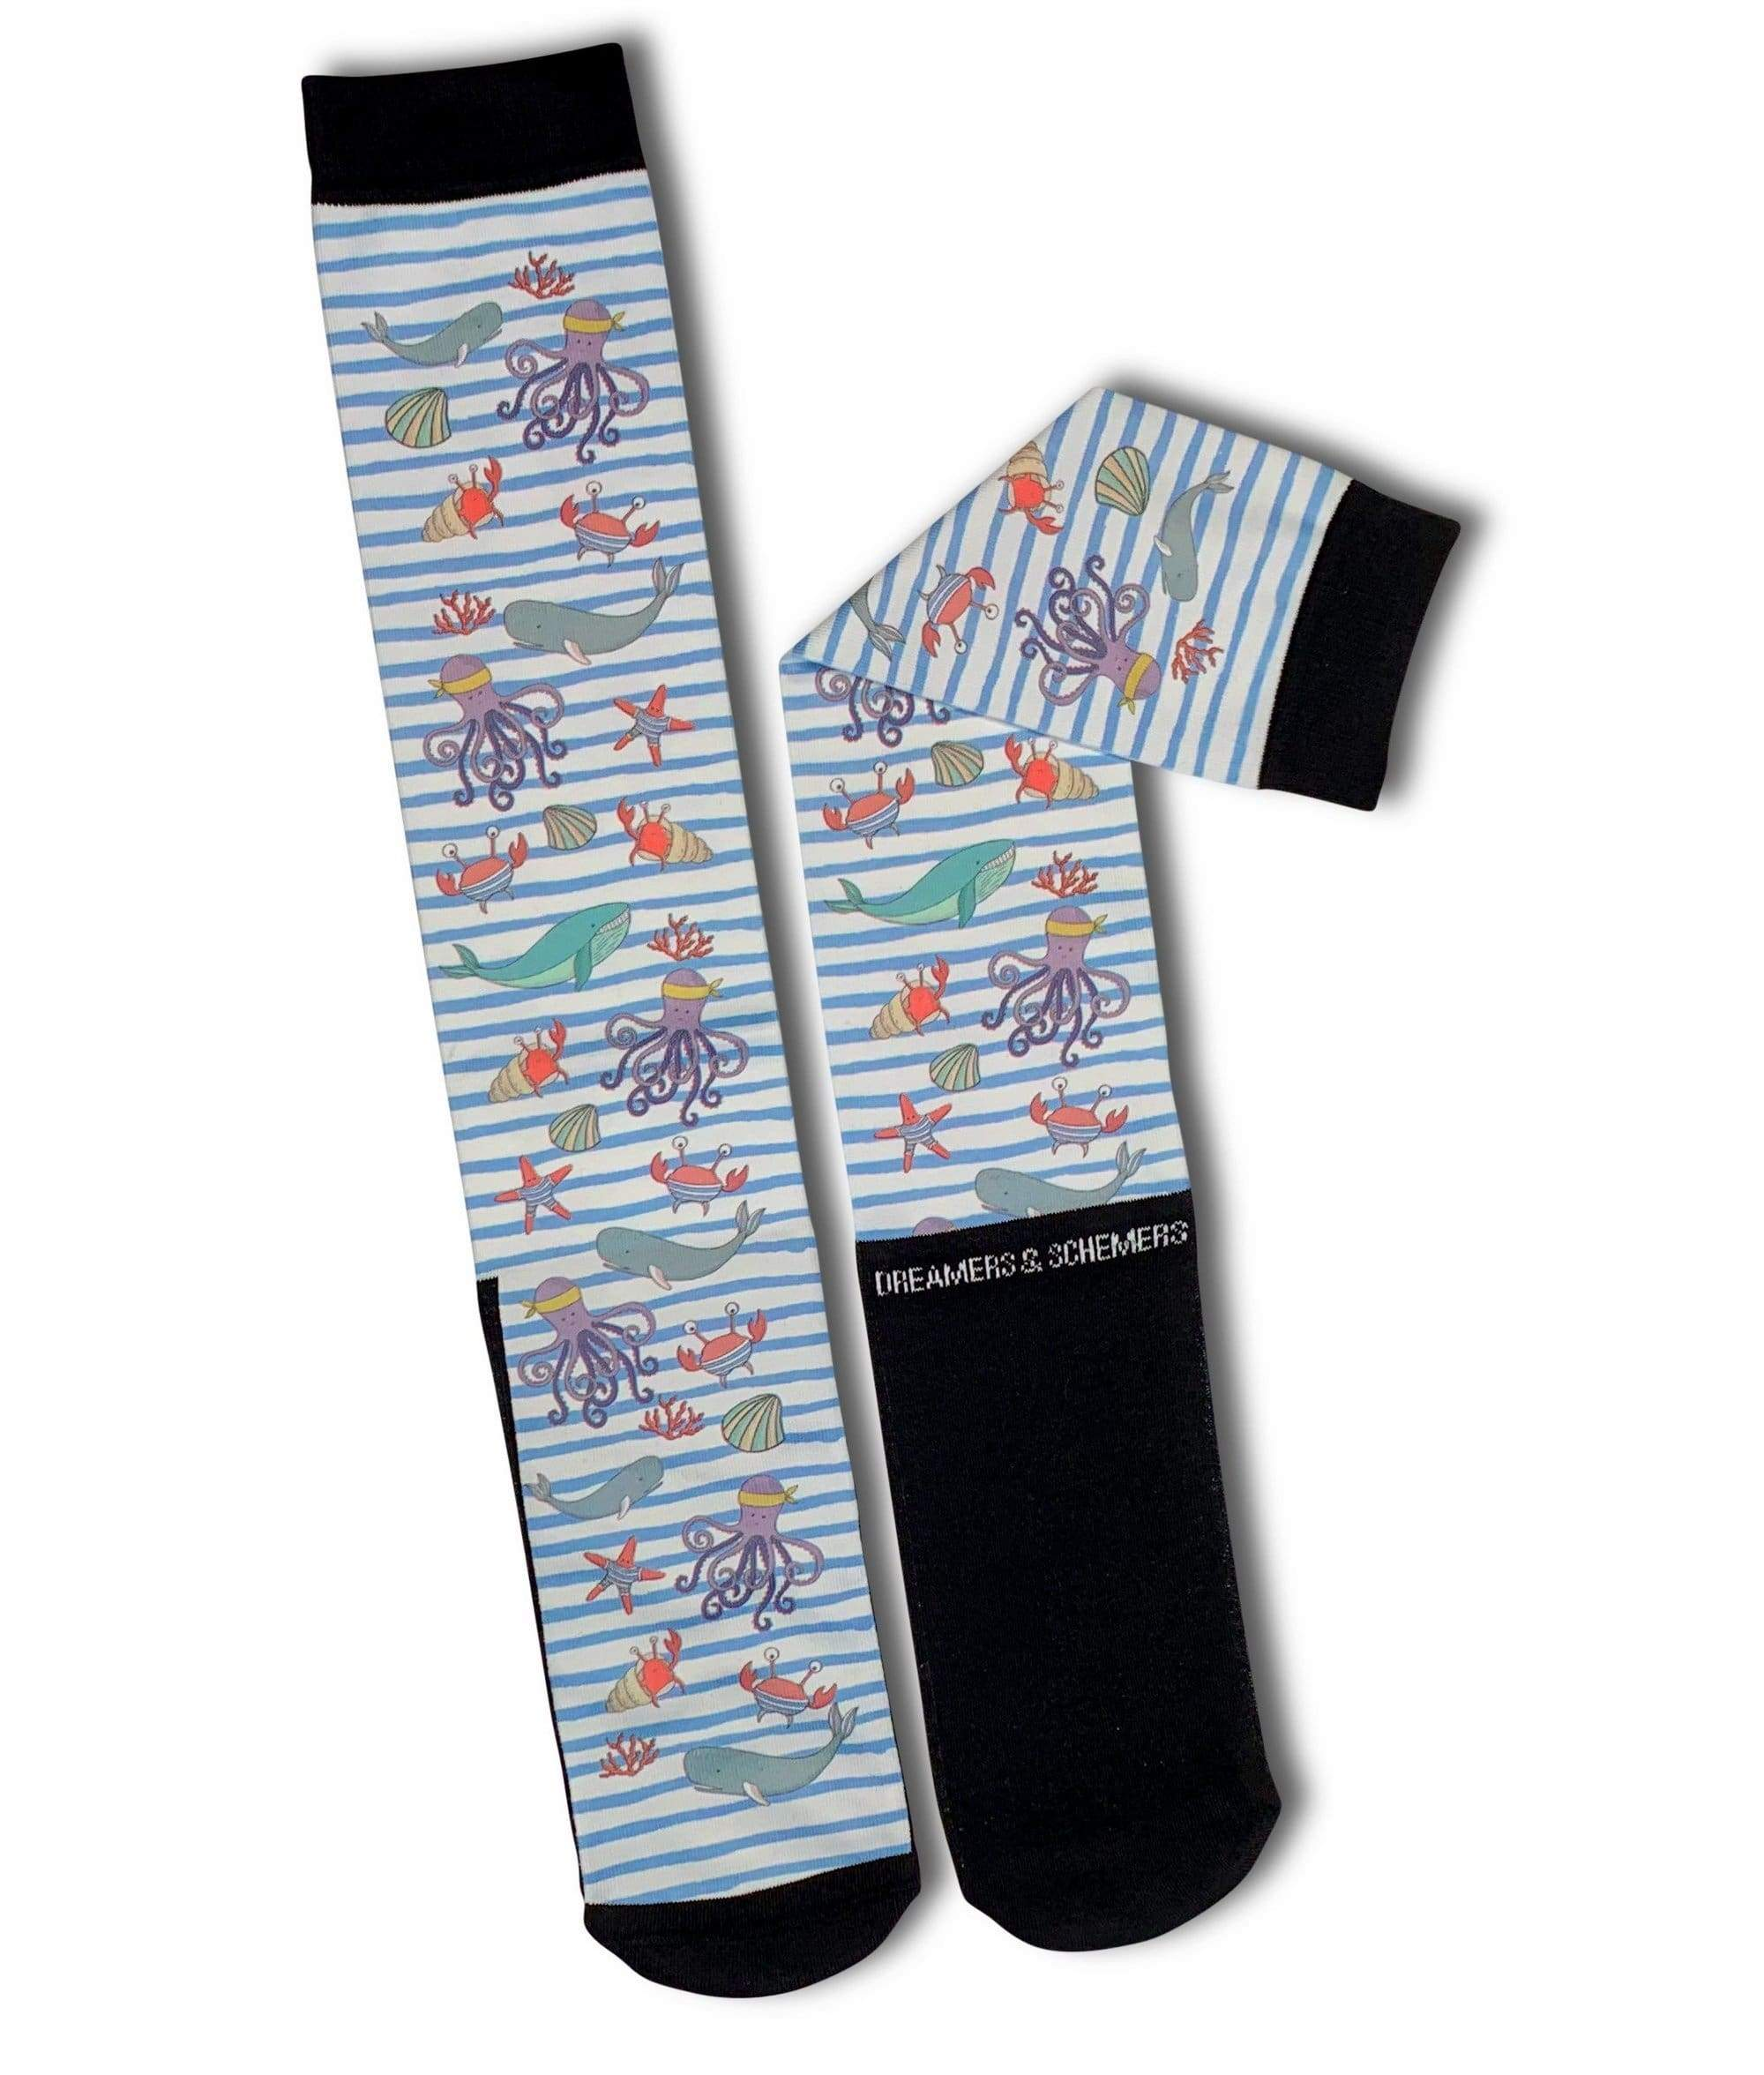 Dreamers & Schemers Socks Dreamers & Schemers Under the Sea equestrian team apparel online tack store mobile tack store custom farm apparel custom show stable clothing equestrian lifestyle horse show clothing riding clothes horses equestrian tack store